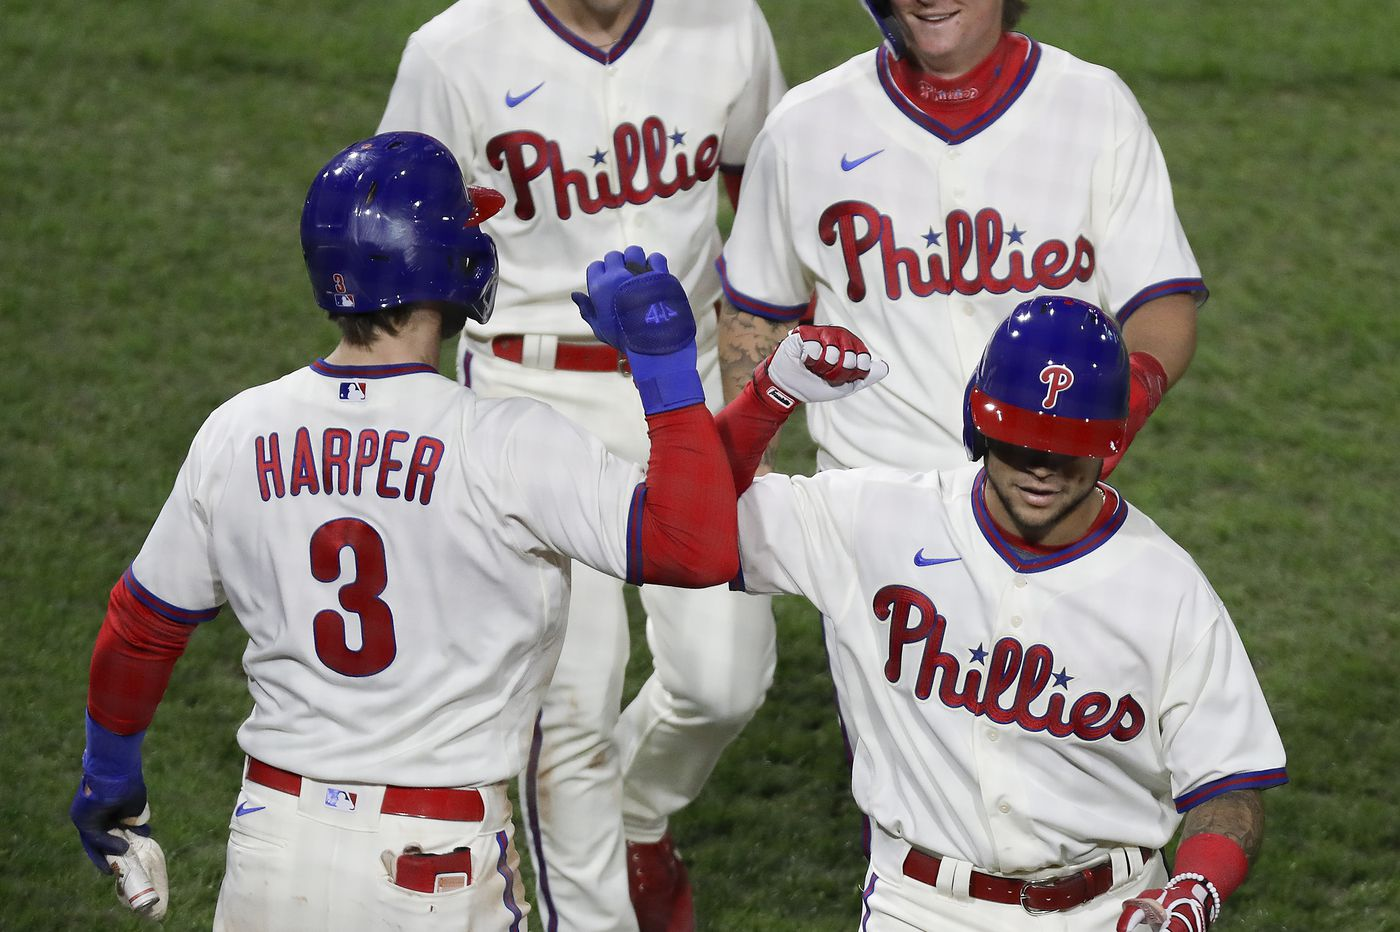 It's crunch time, and here is how the Phillies can make the playoffs